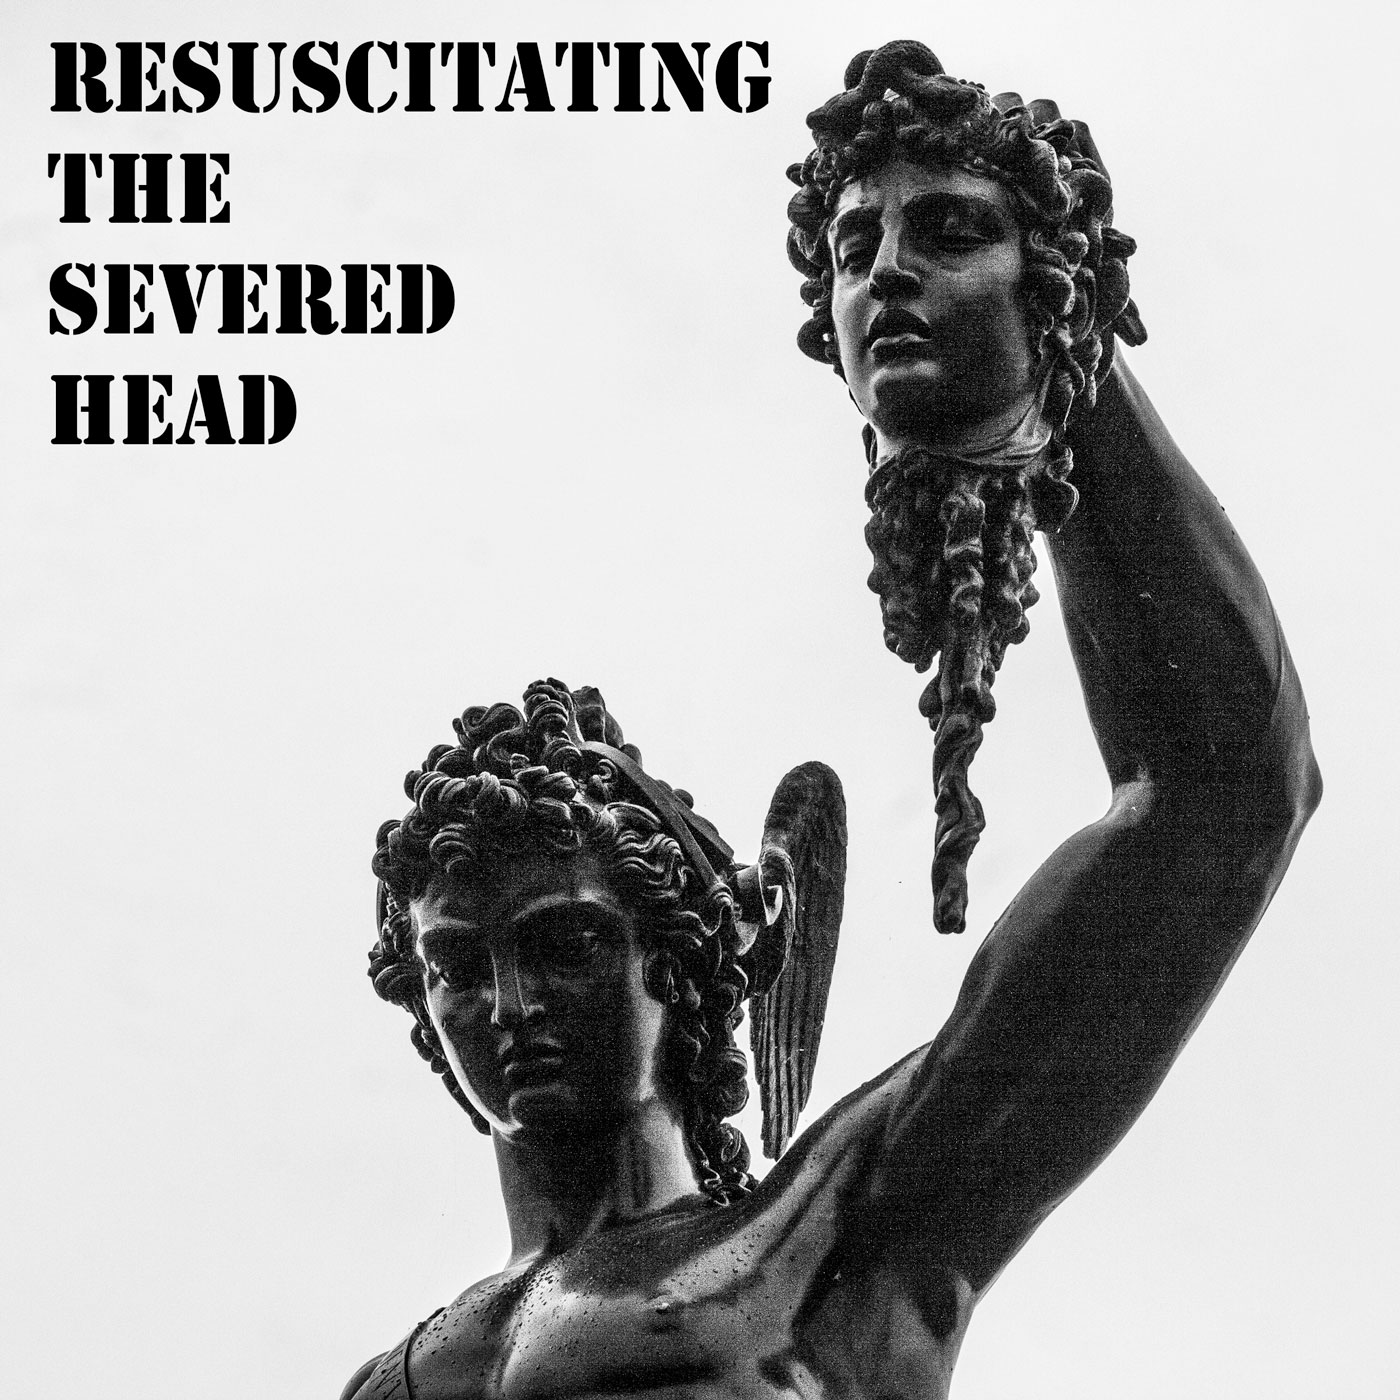 Resuscitating the Severed Head - Resuscitating The Severed Head